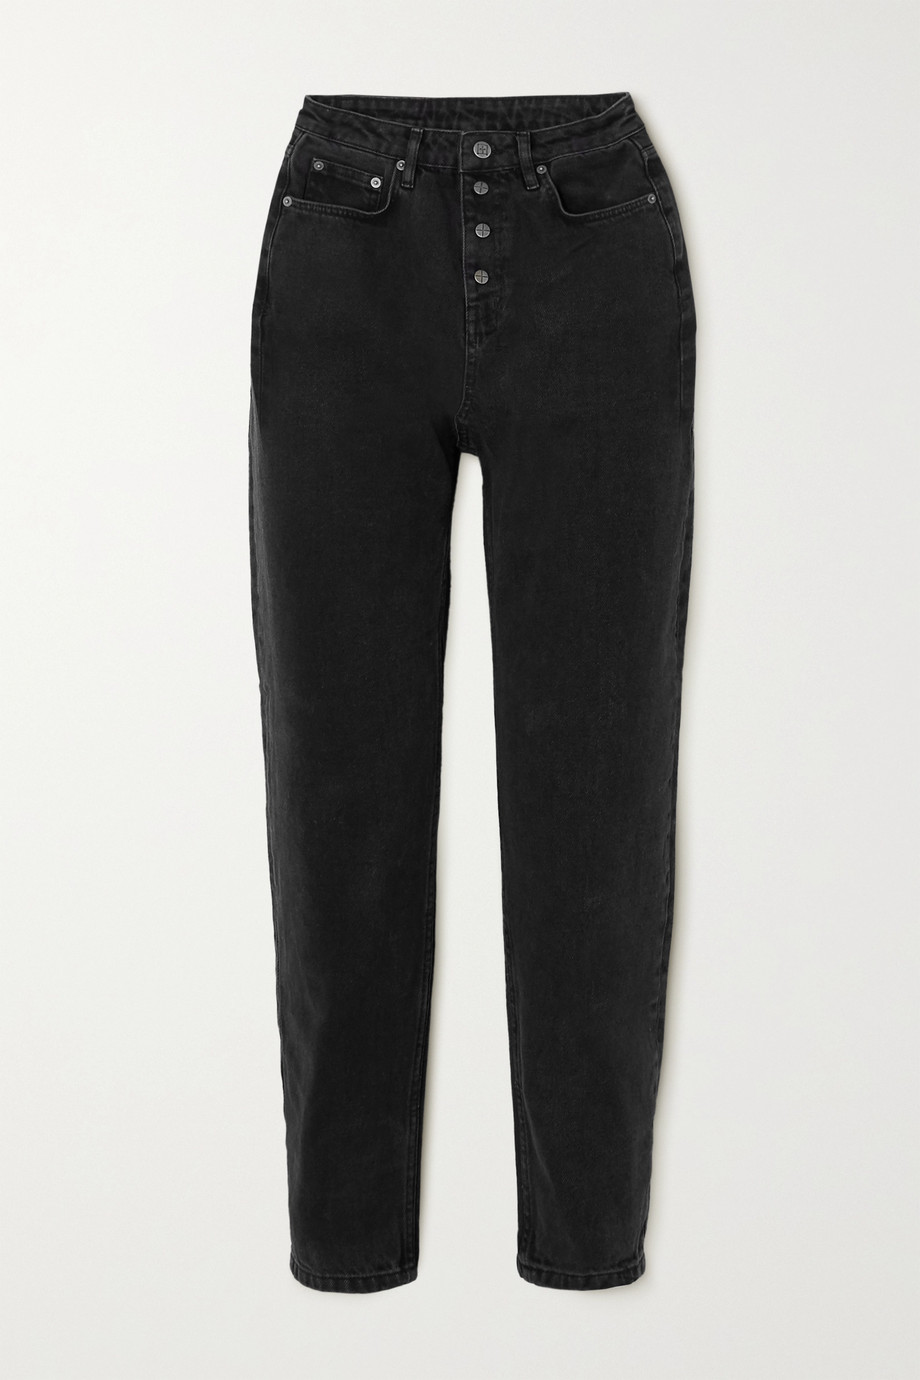 Ksubi Pointer high-rise tapered jeans